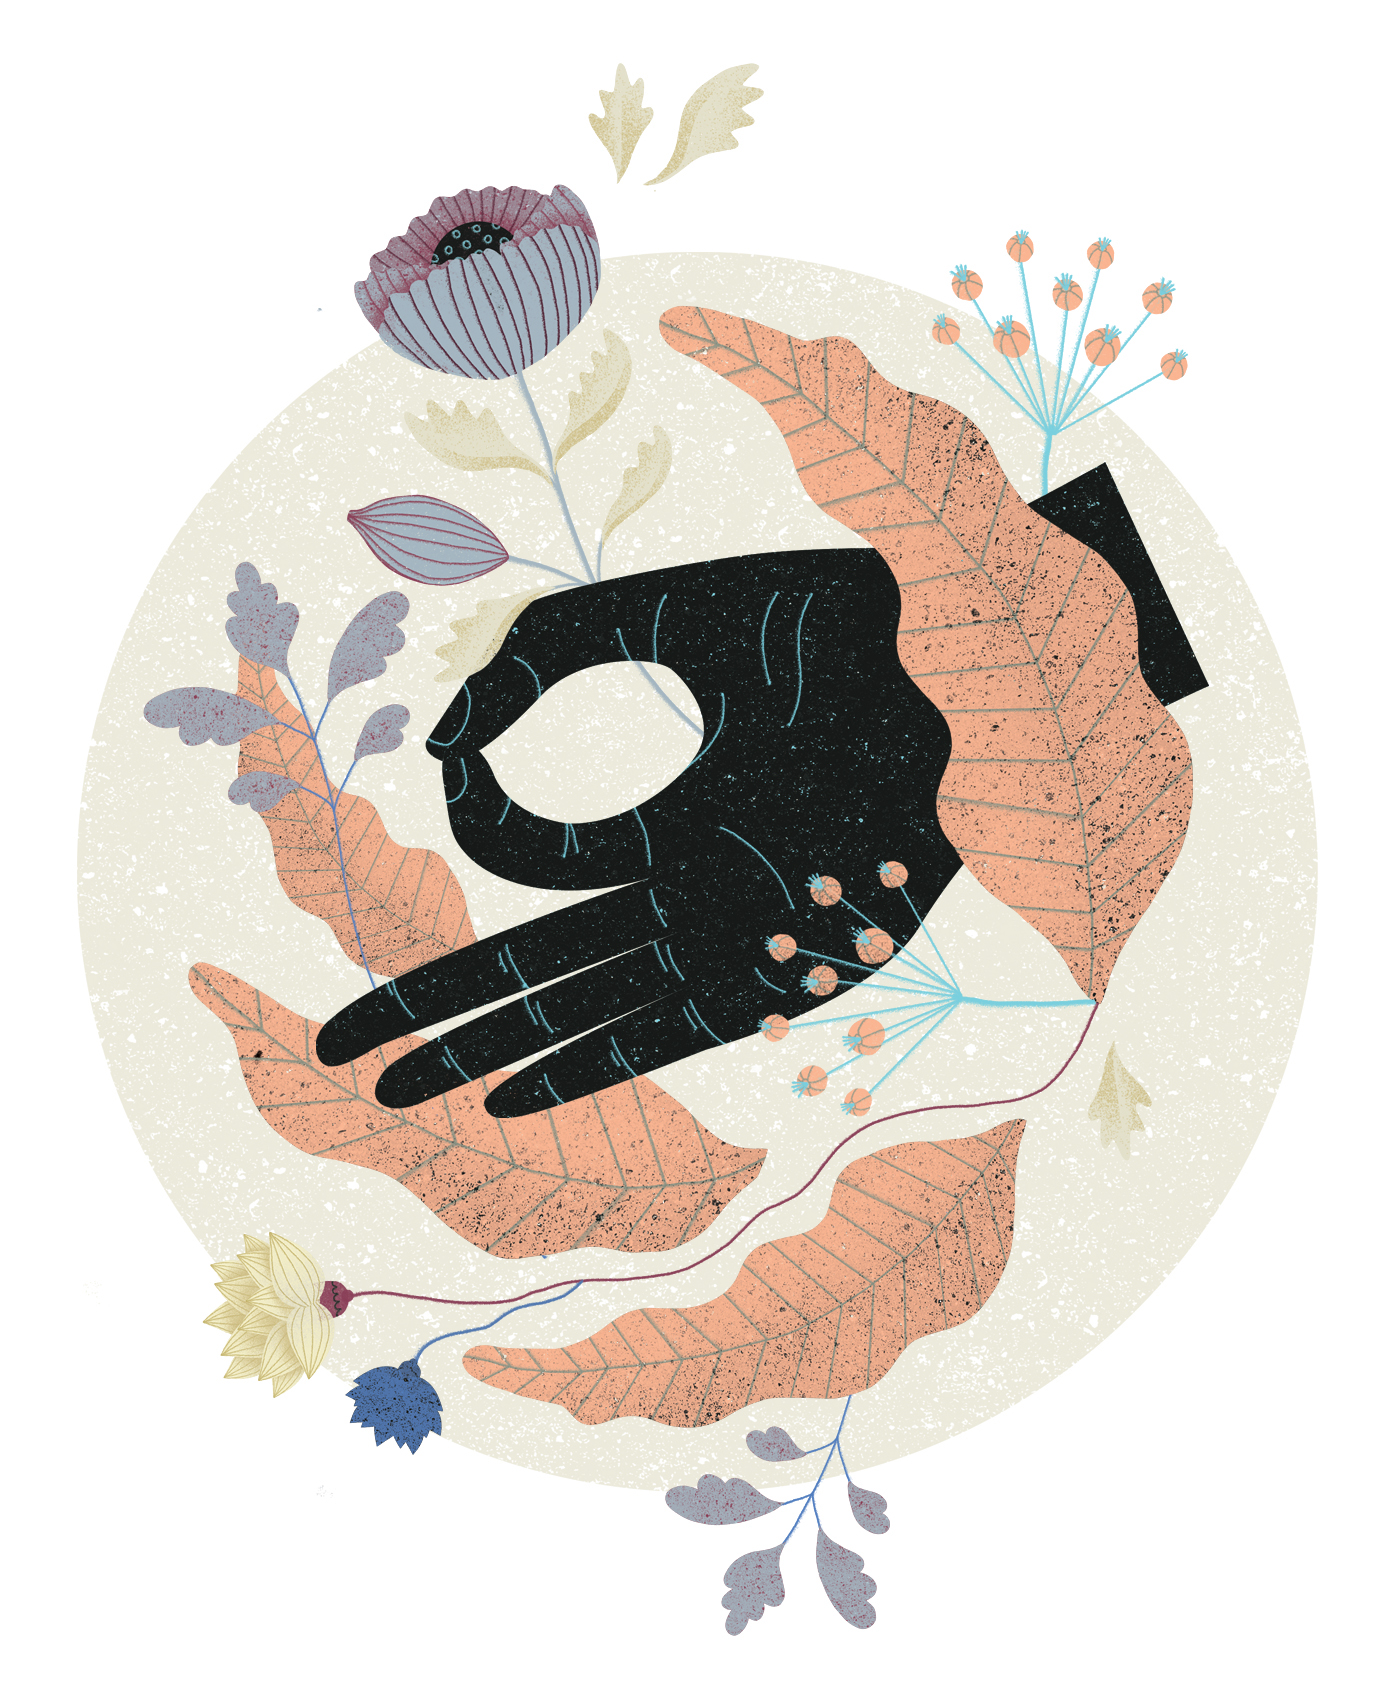 Wellbeing illustrations on